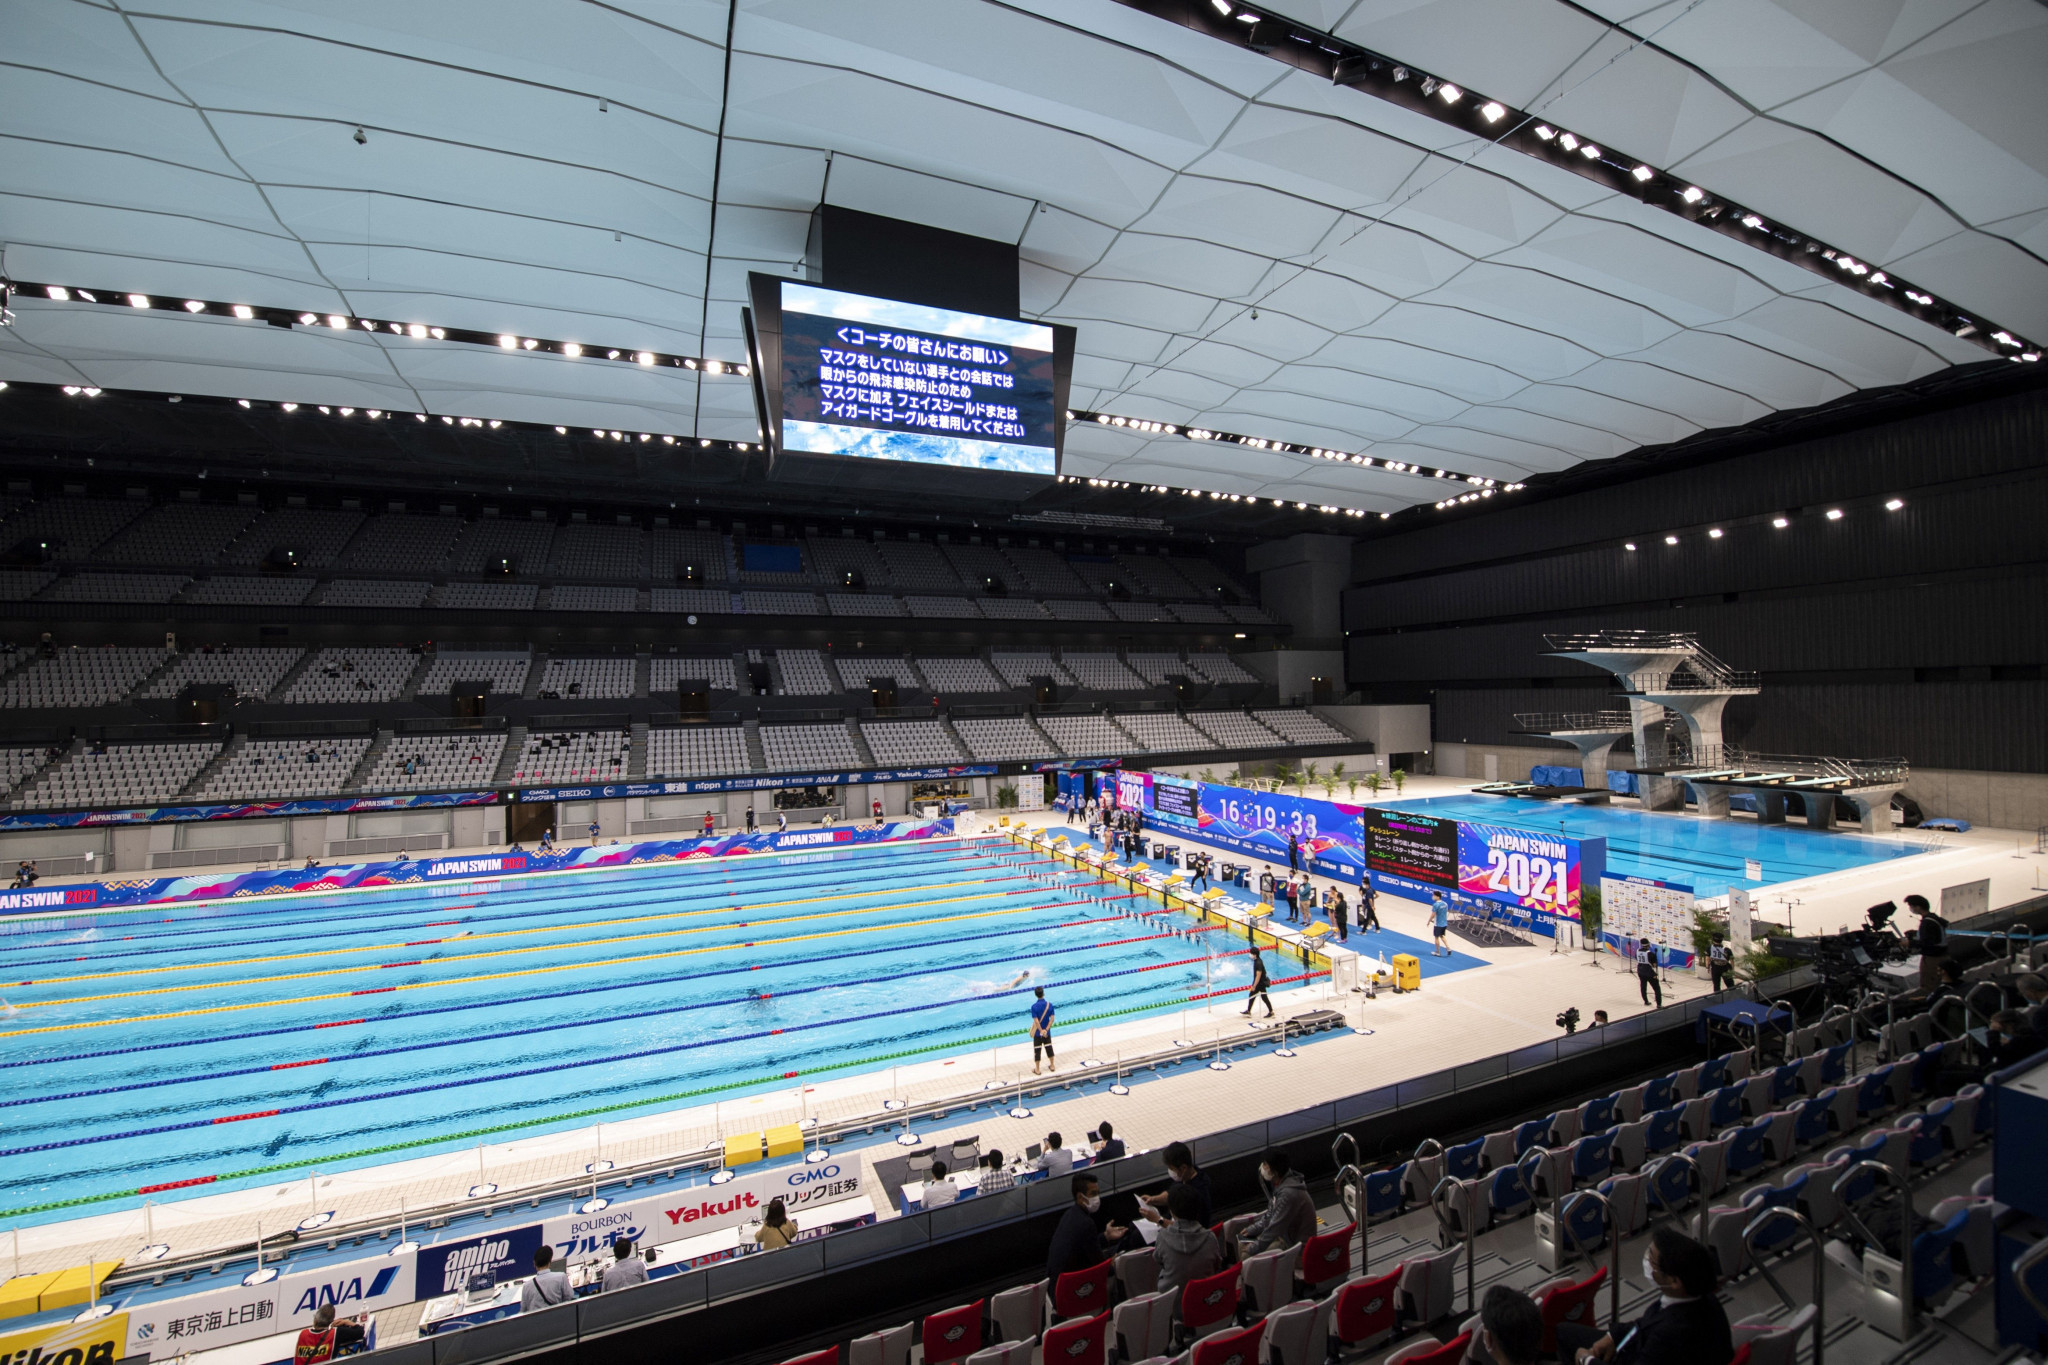 Two ROC swimmers have been provisionally suspended - accused of anti-doping rule violations - and so will miss the Olympics ©Getty Images